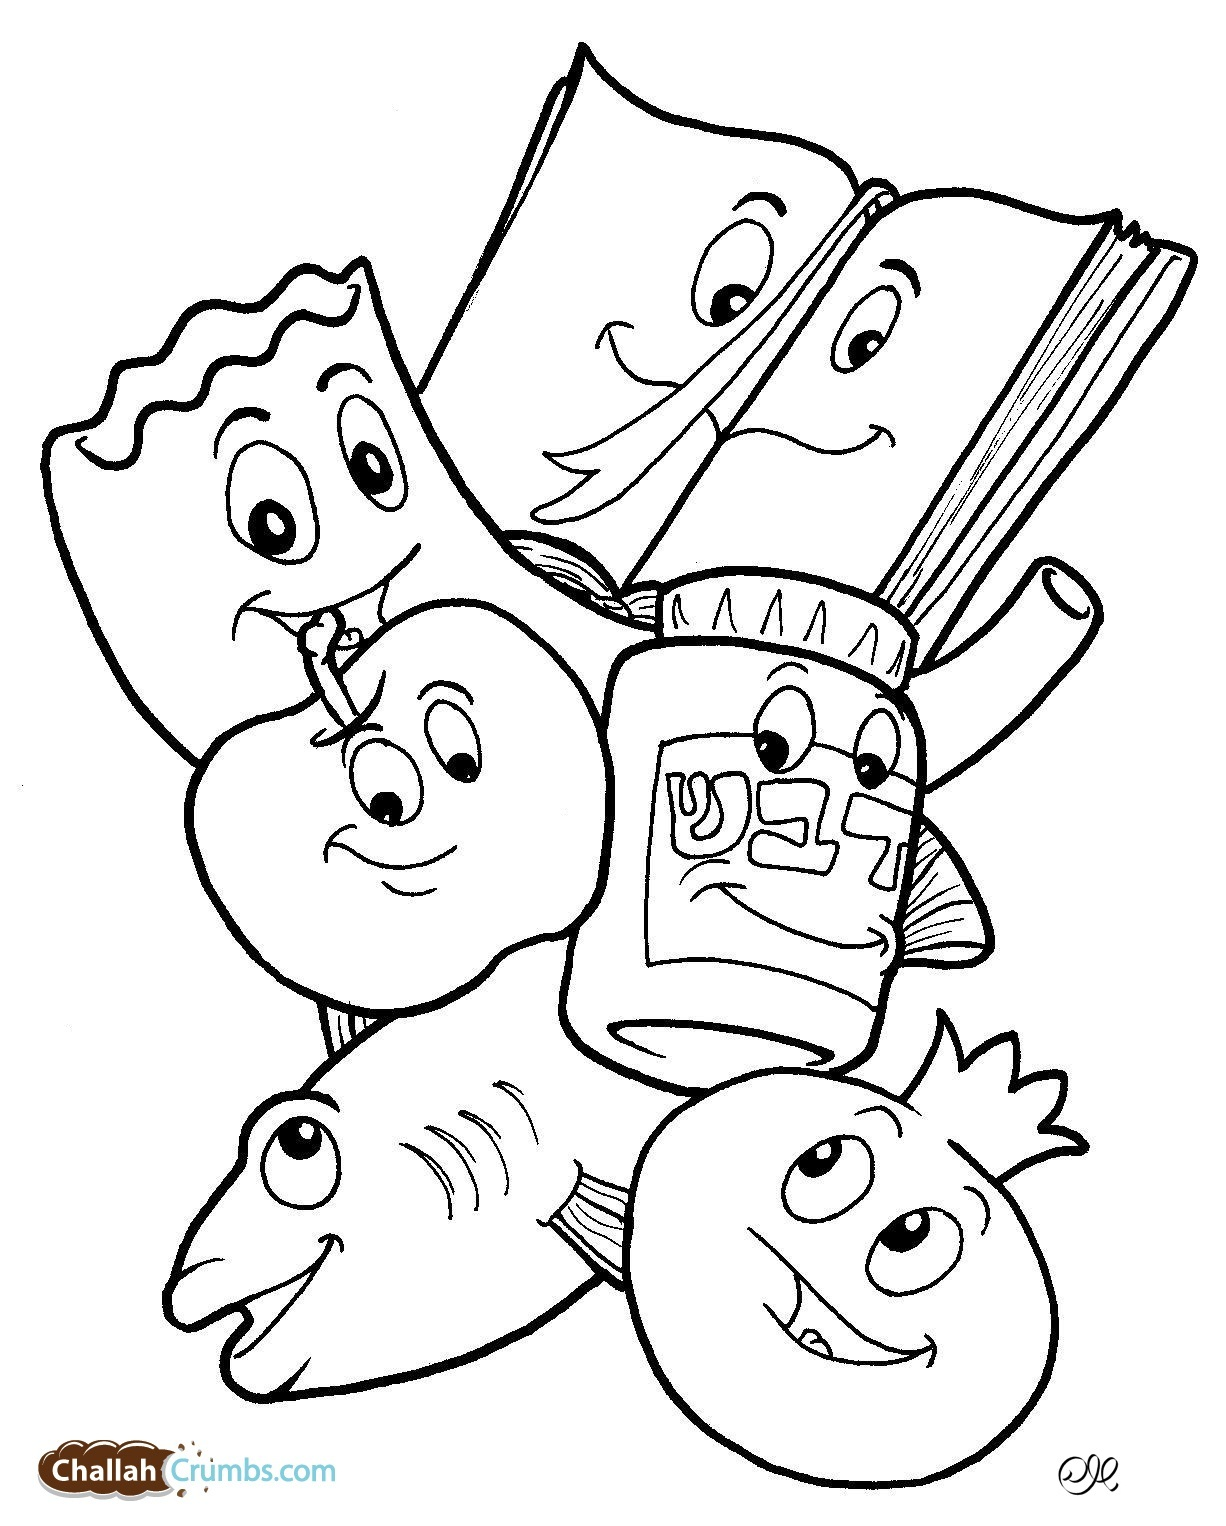 rosh-hashanah coloring pages for kids,printable,coloring pages